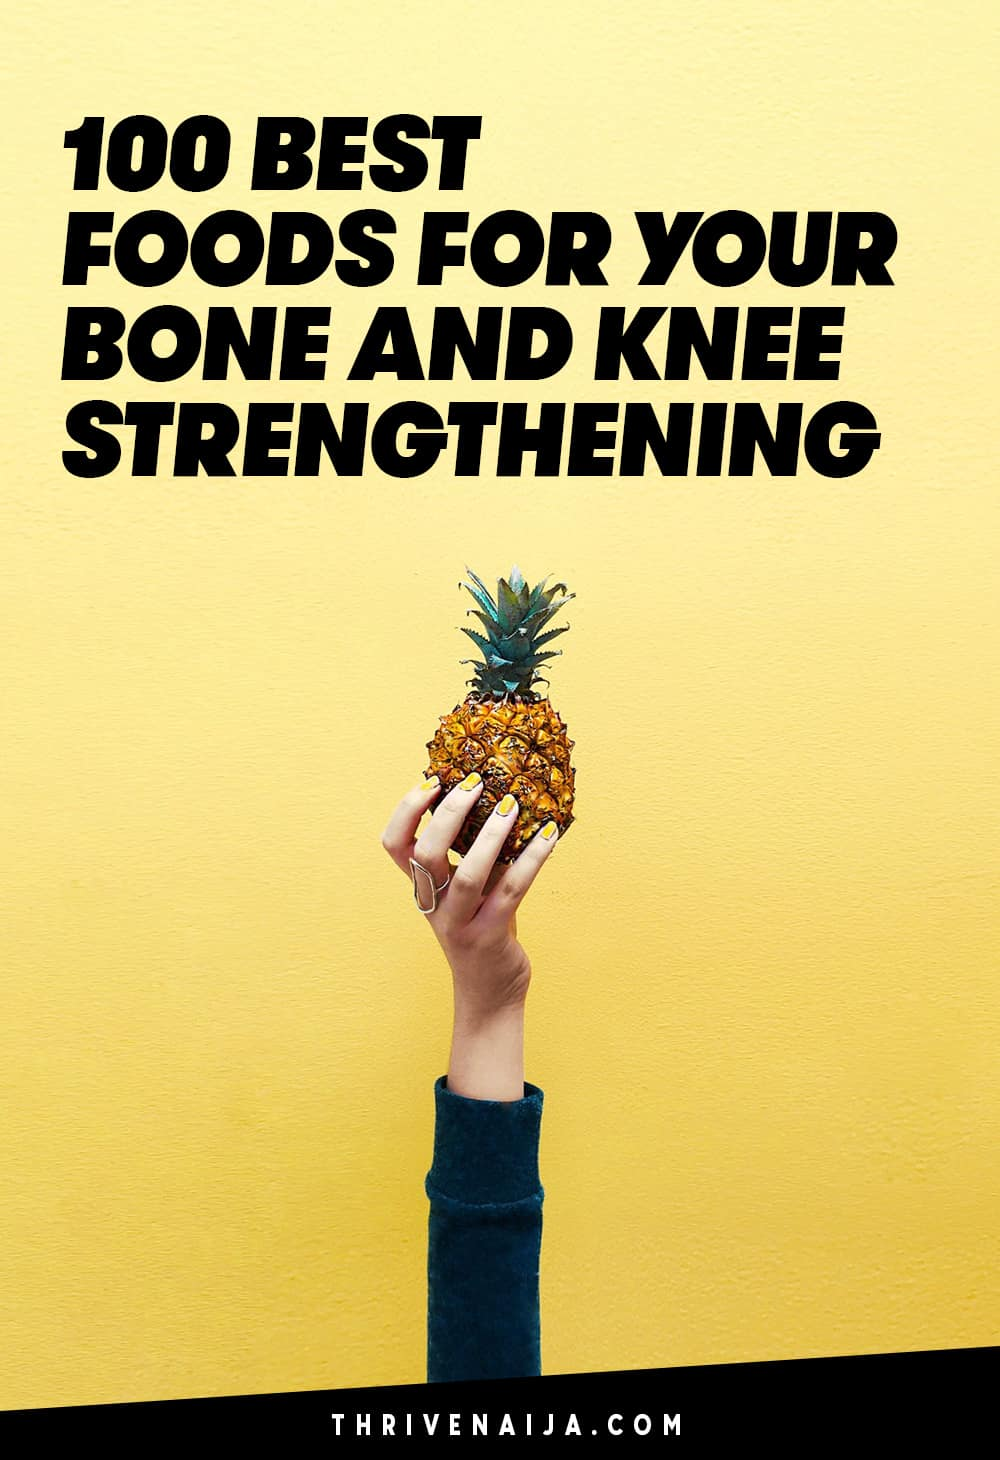 Best Foods For Your Bone And Knee Strengthening